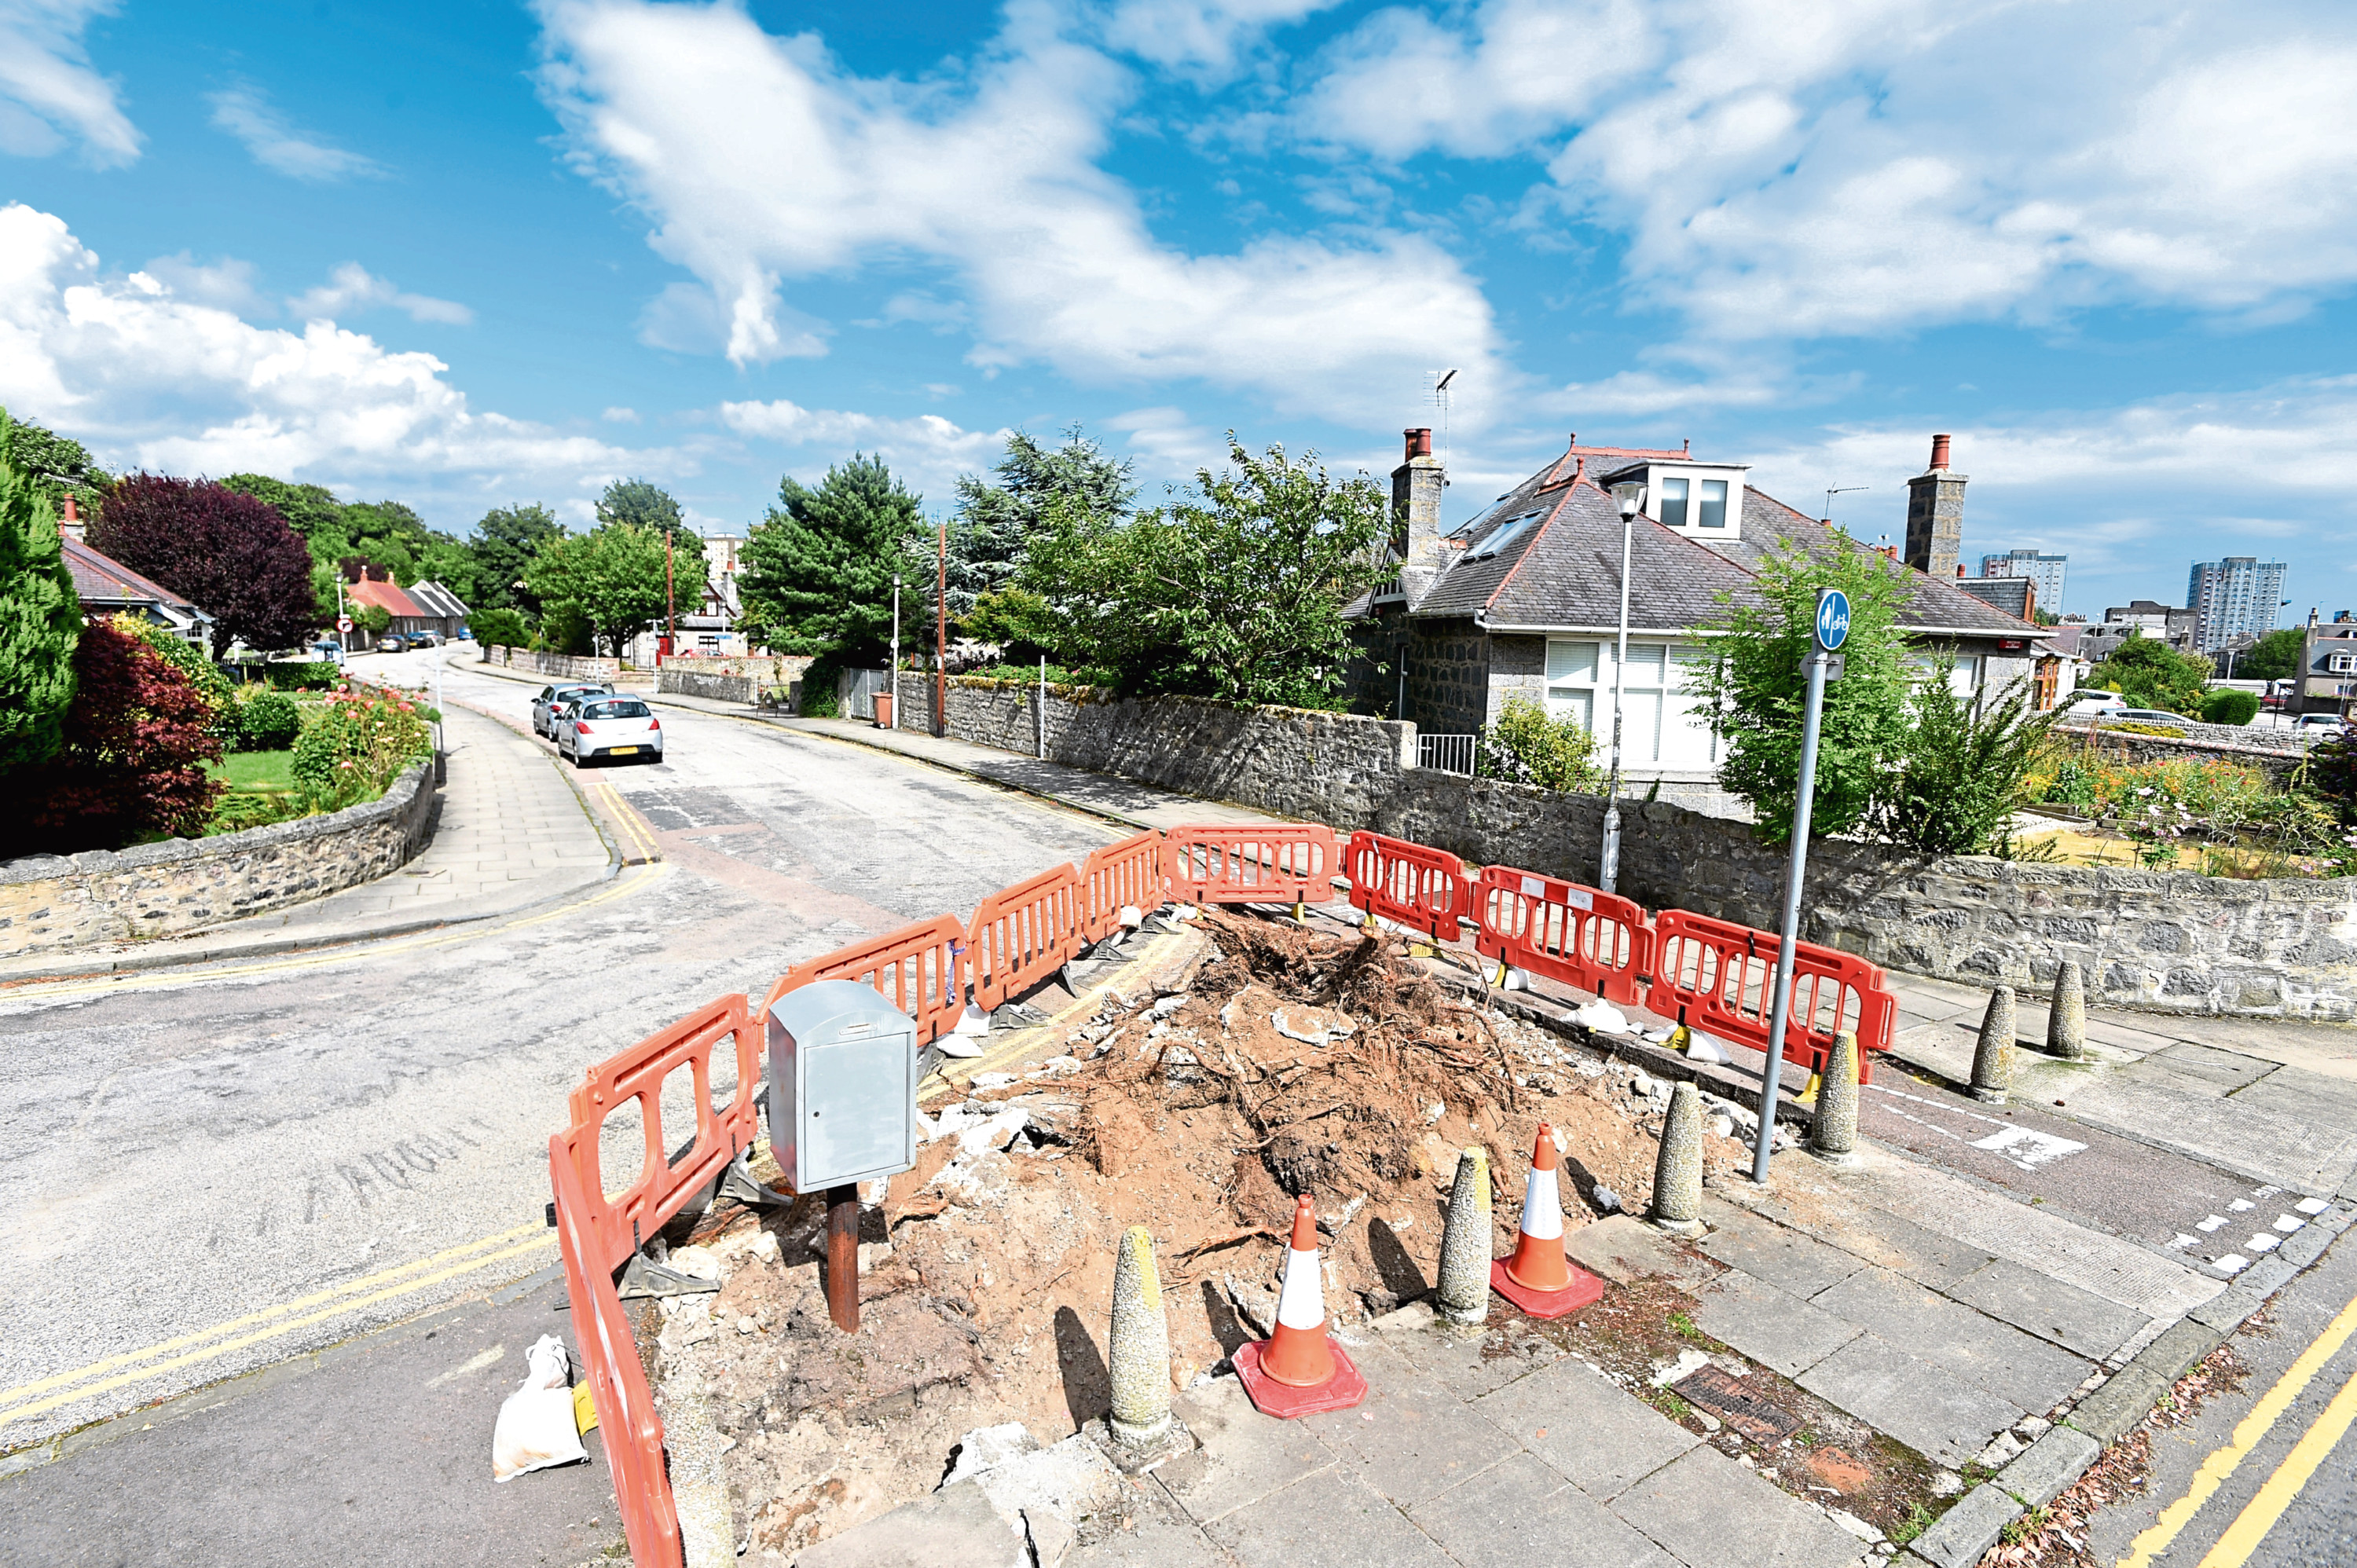 Residents in Old Aberdeen were outraged after trees and shrubs on the island between Don Street and Cheyne Road were cut down by council officers without any consultation